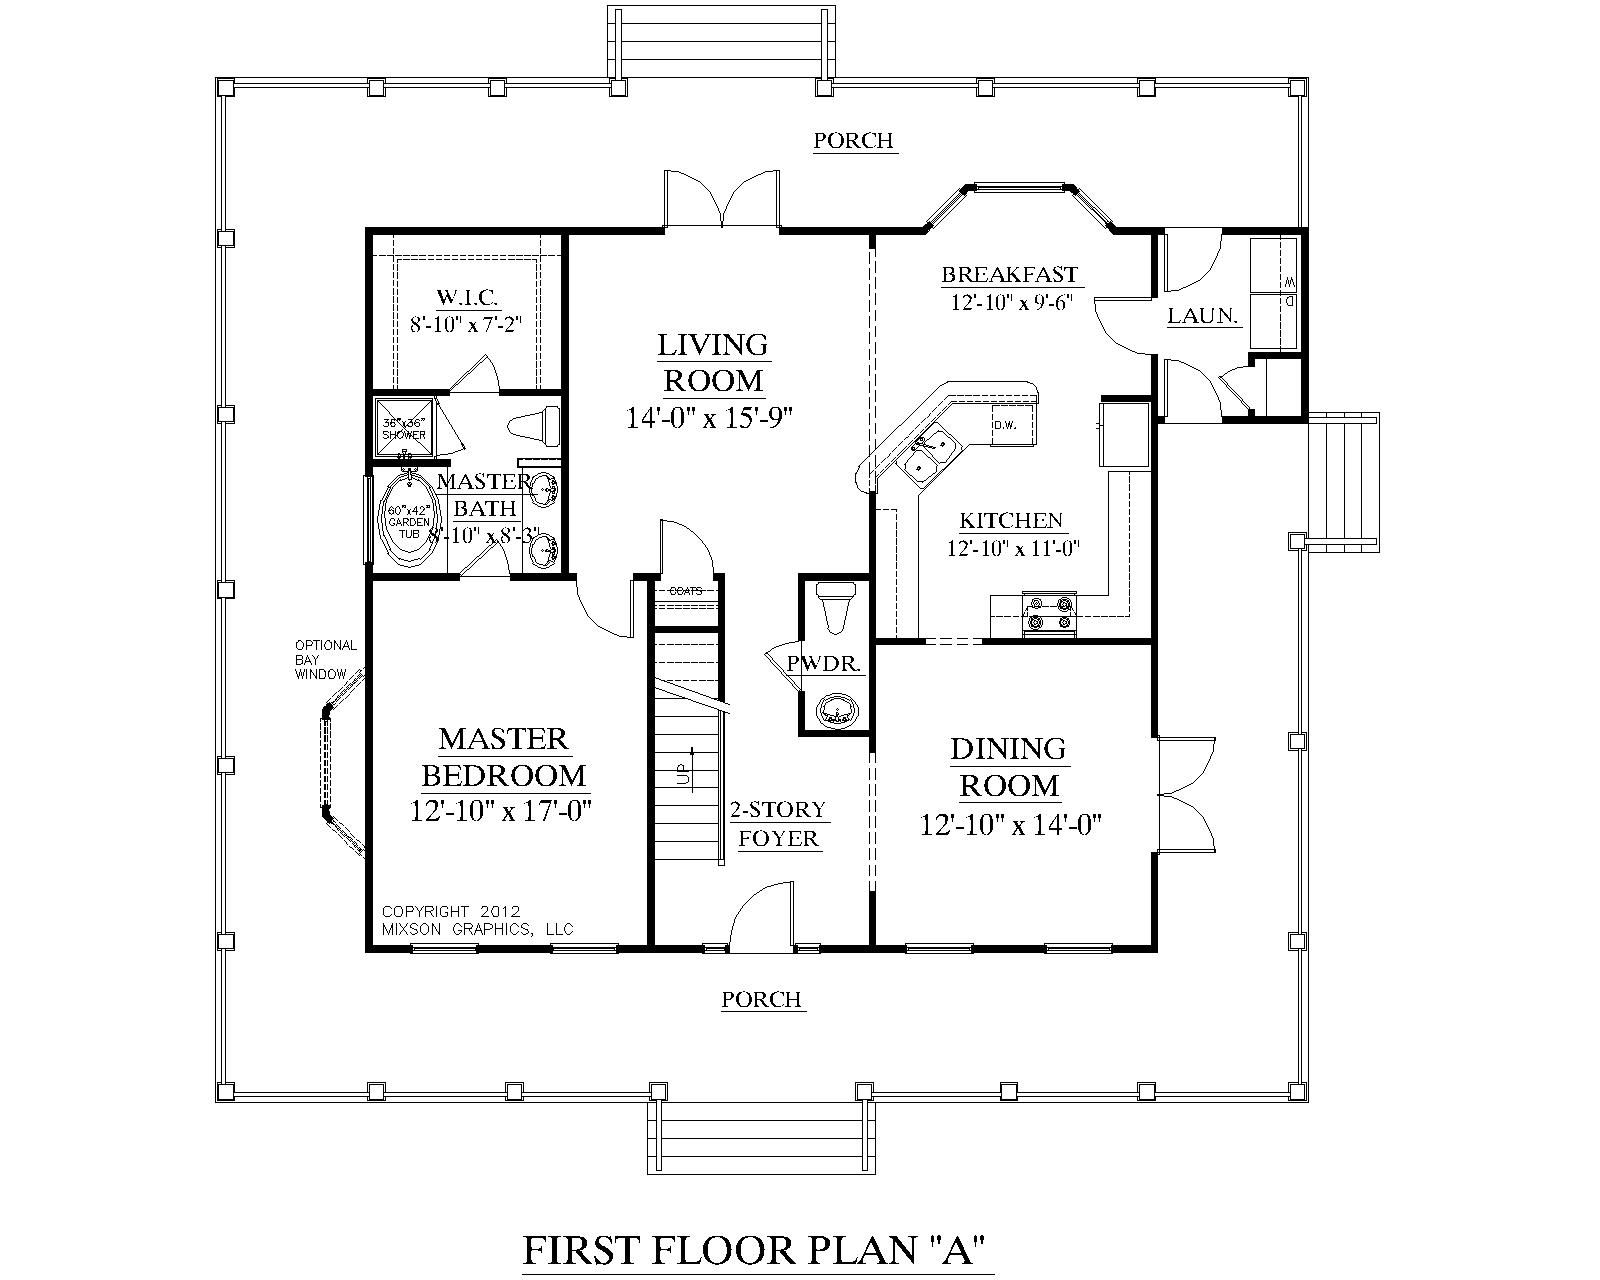 small one bedroom house plans traditional 1 12 story house plan - Single Story House Plans